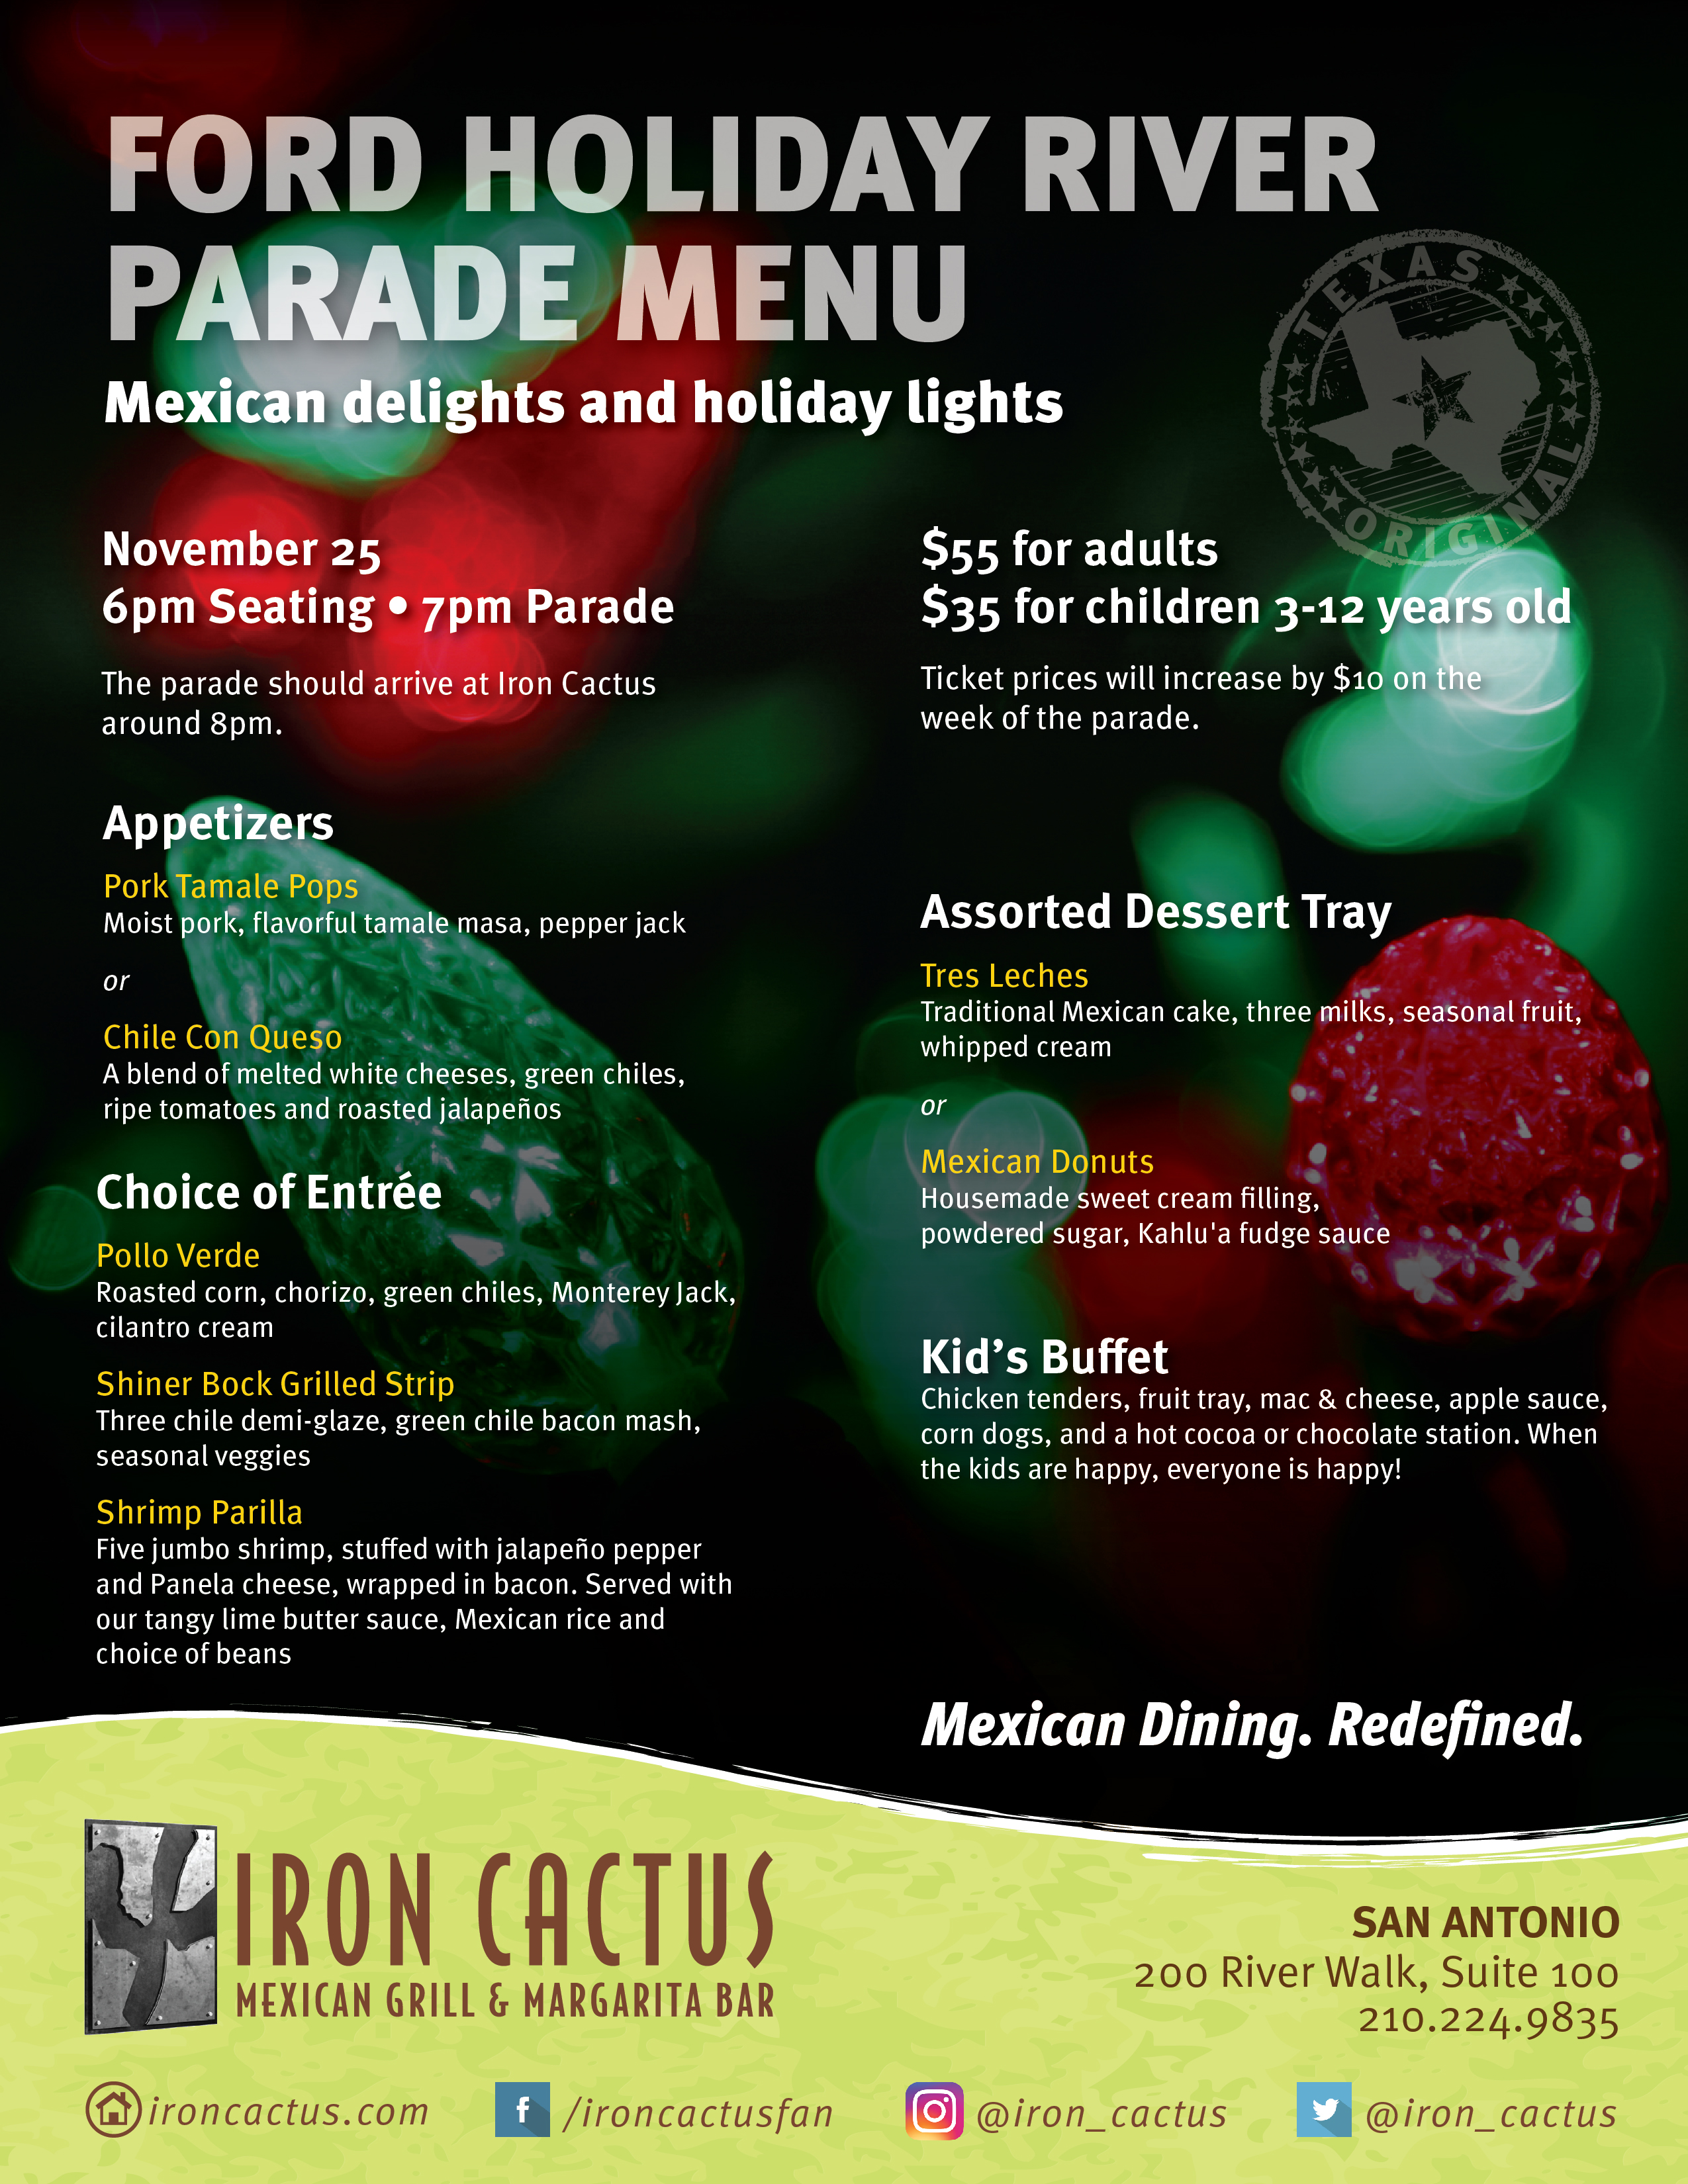 Iron Cactus-Mexican-Restaurants-Lighting The River Parade Menu